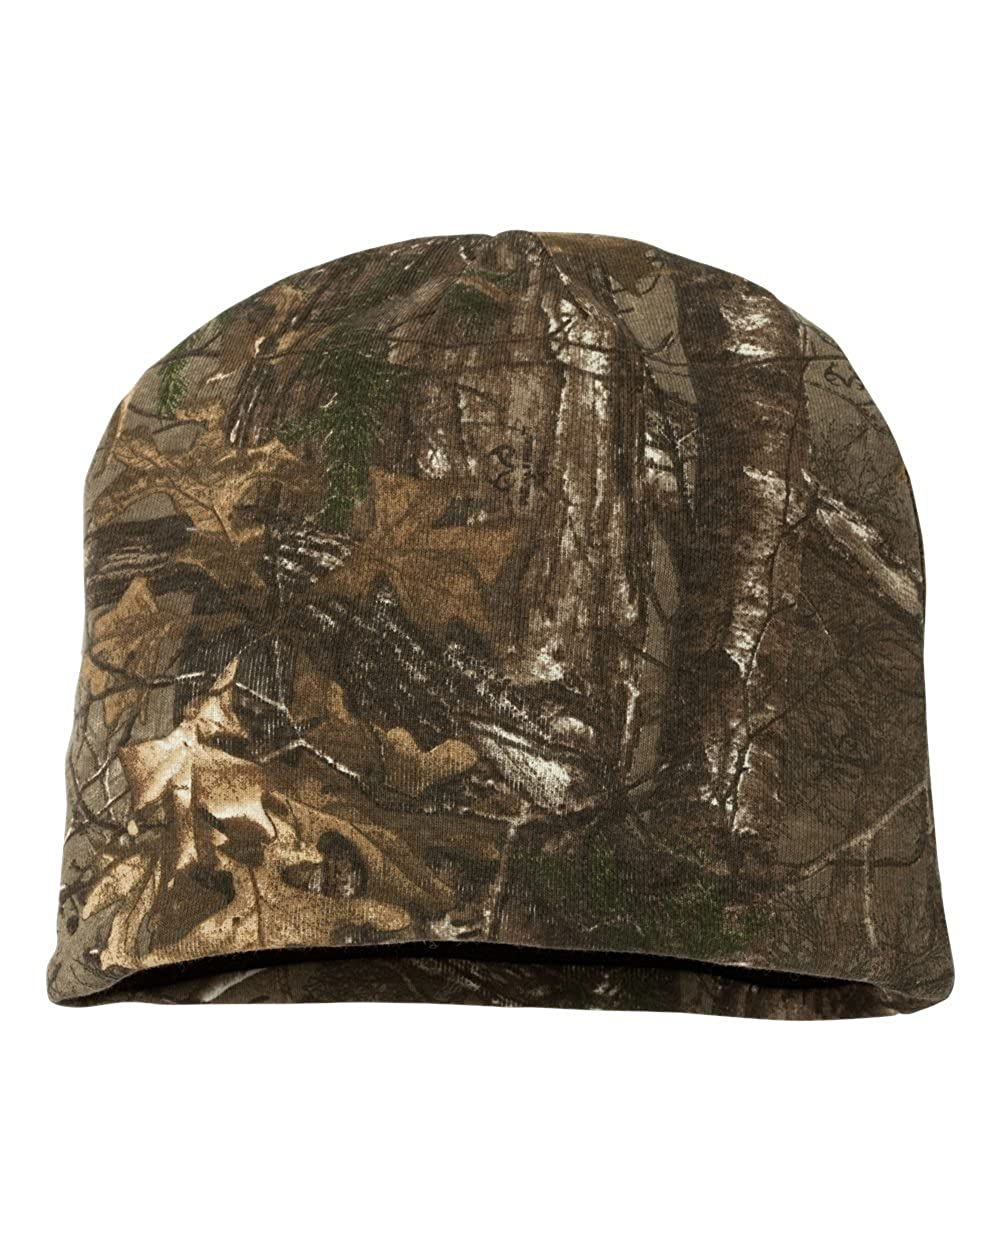 Joe s USA(tm Mossy Oak Camo Knit Hunting Beanie at Amazon Men s Clothing  store  13cf67cba15